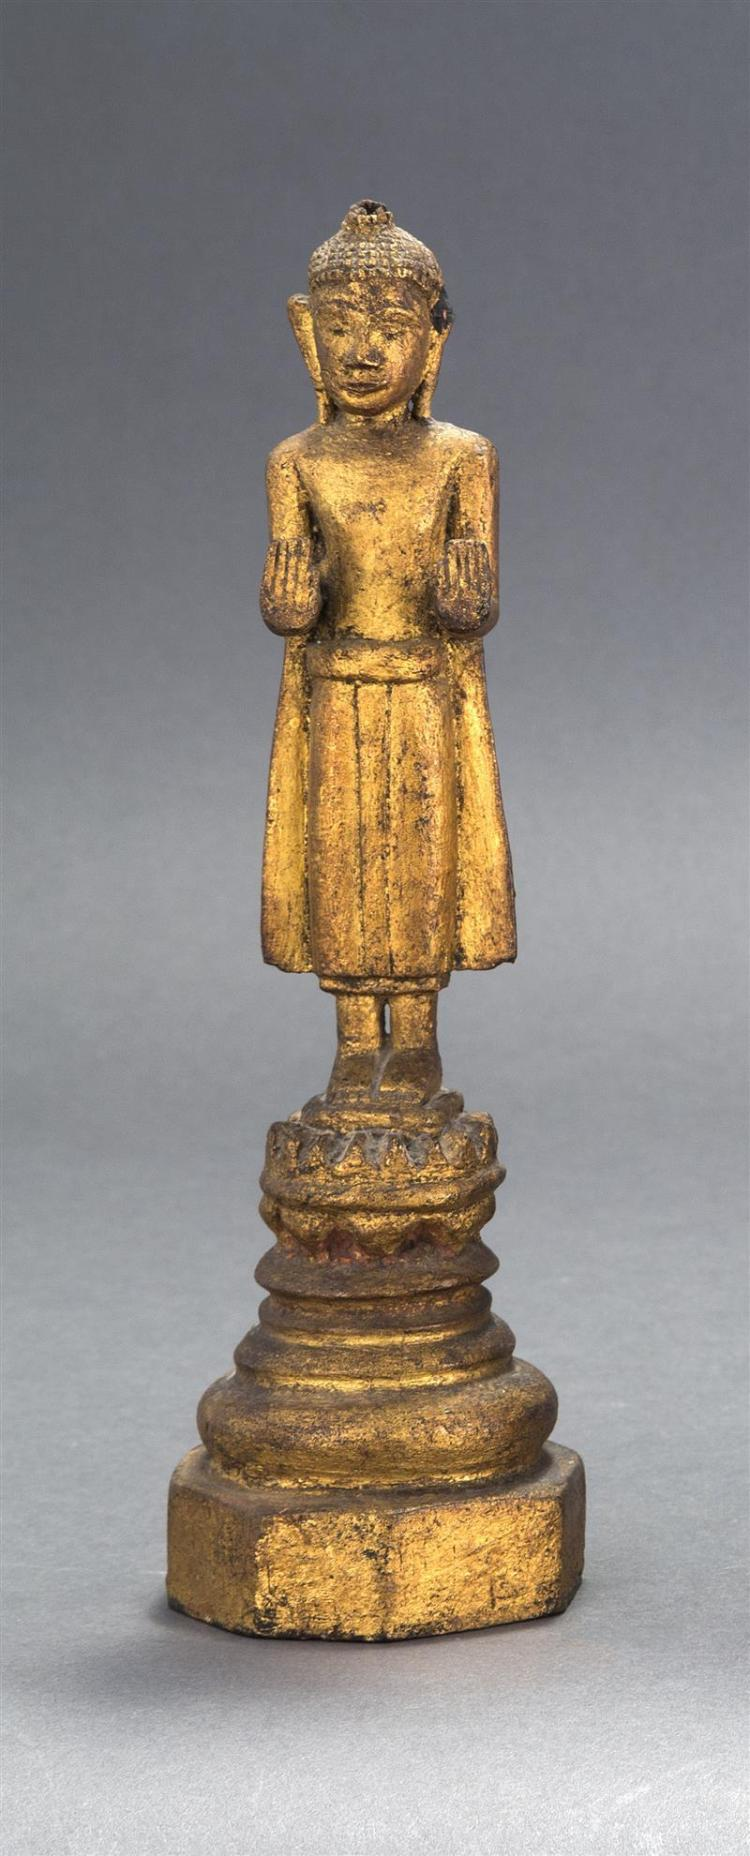 GILTWOOD STATUE OF BUDDHA Standing on a multi-tiered lotus throne base with palms facing out. Height 10.5